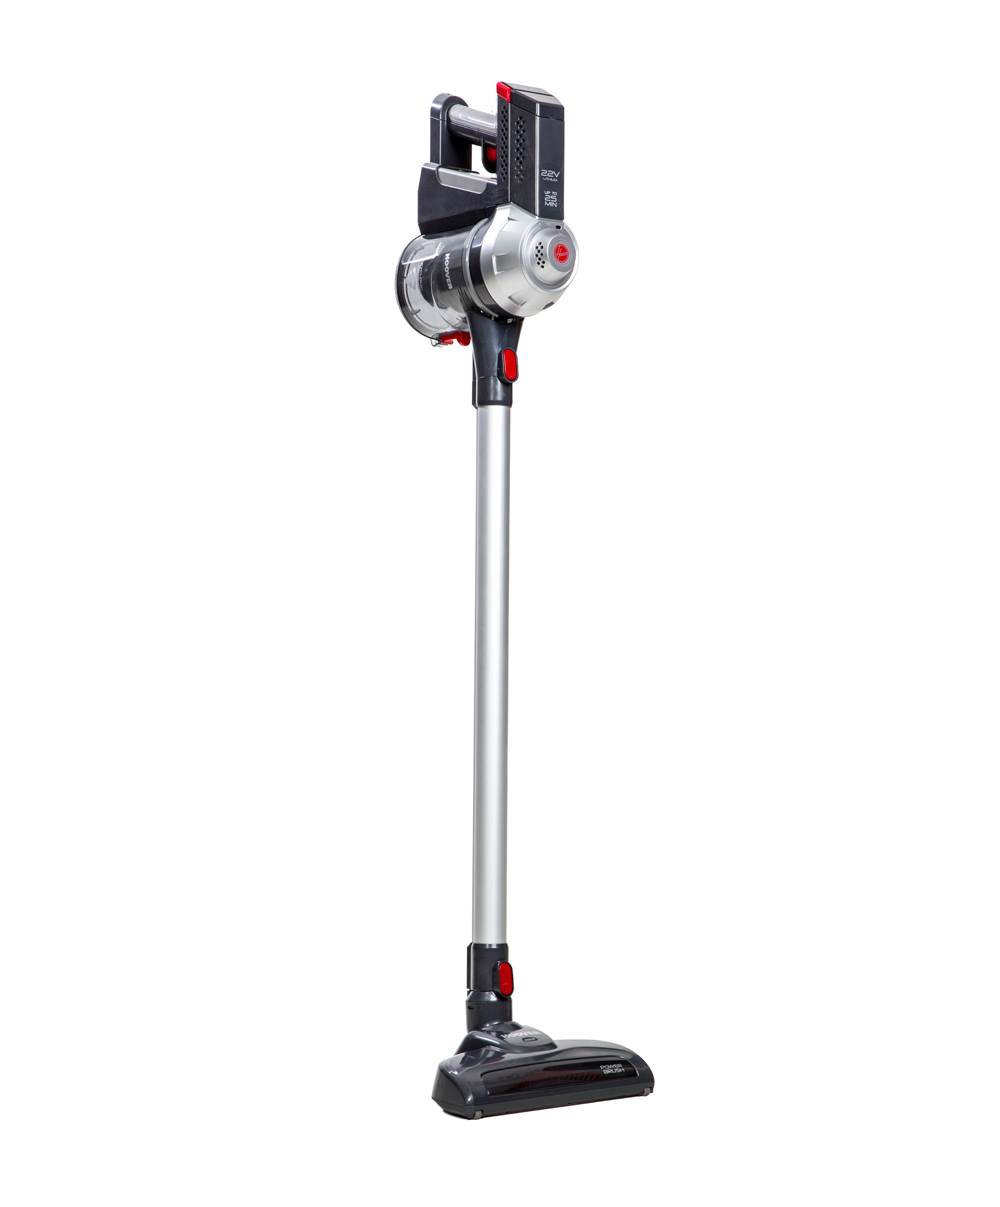 Vacuum Cleaners & Accessories Hoover Freedom FD22G Cordless Vacuum